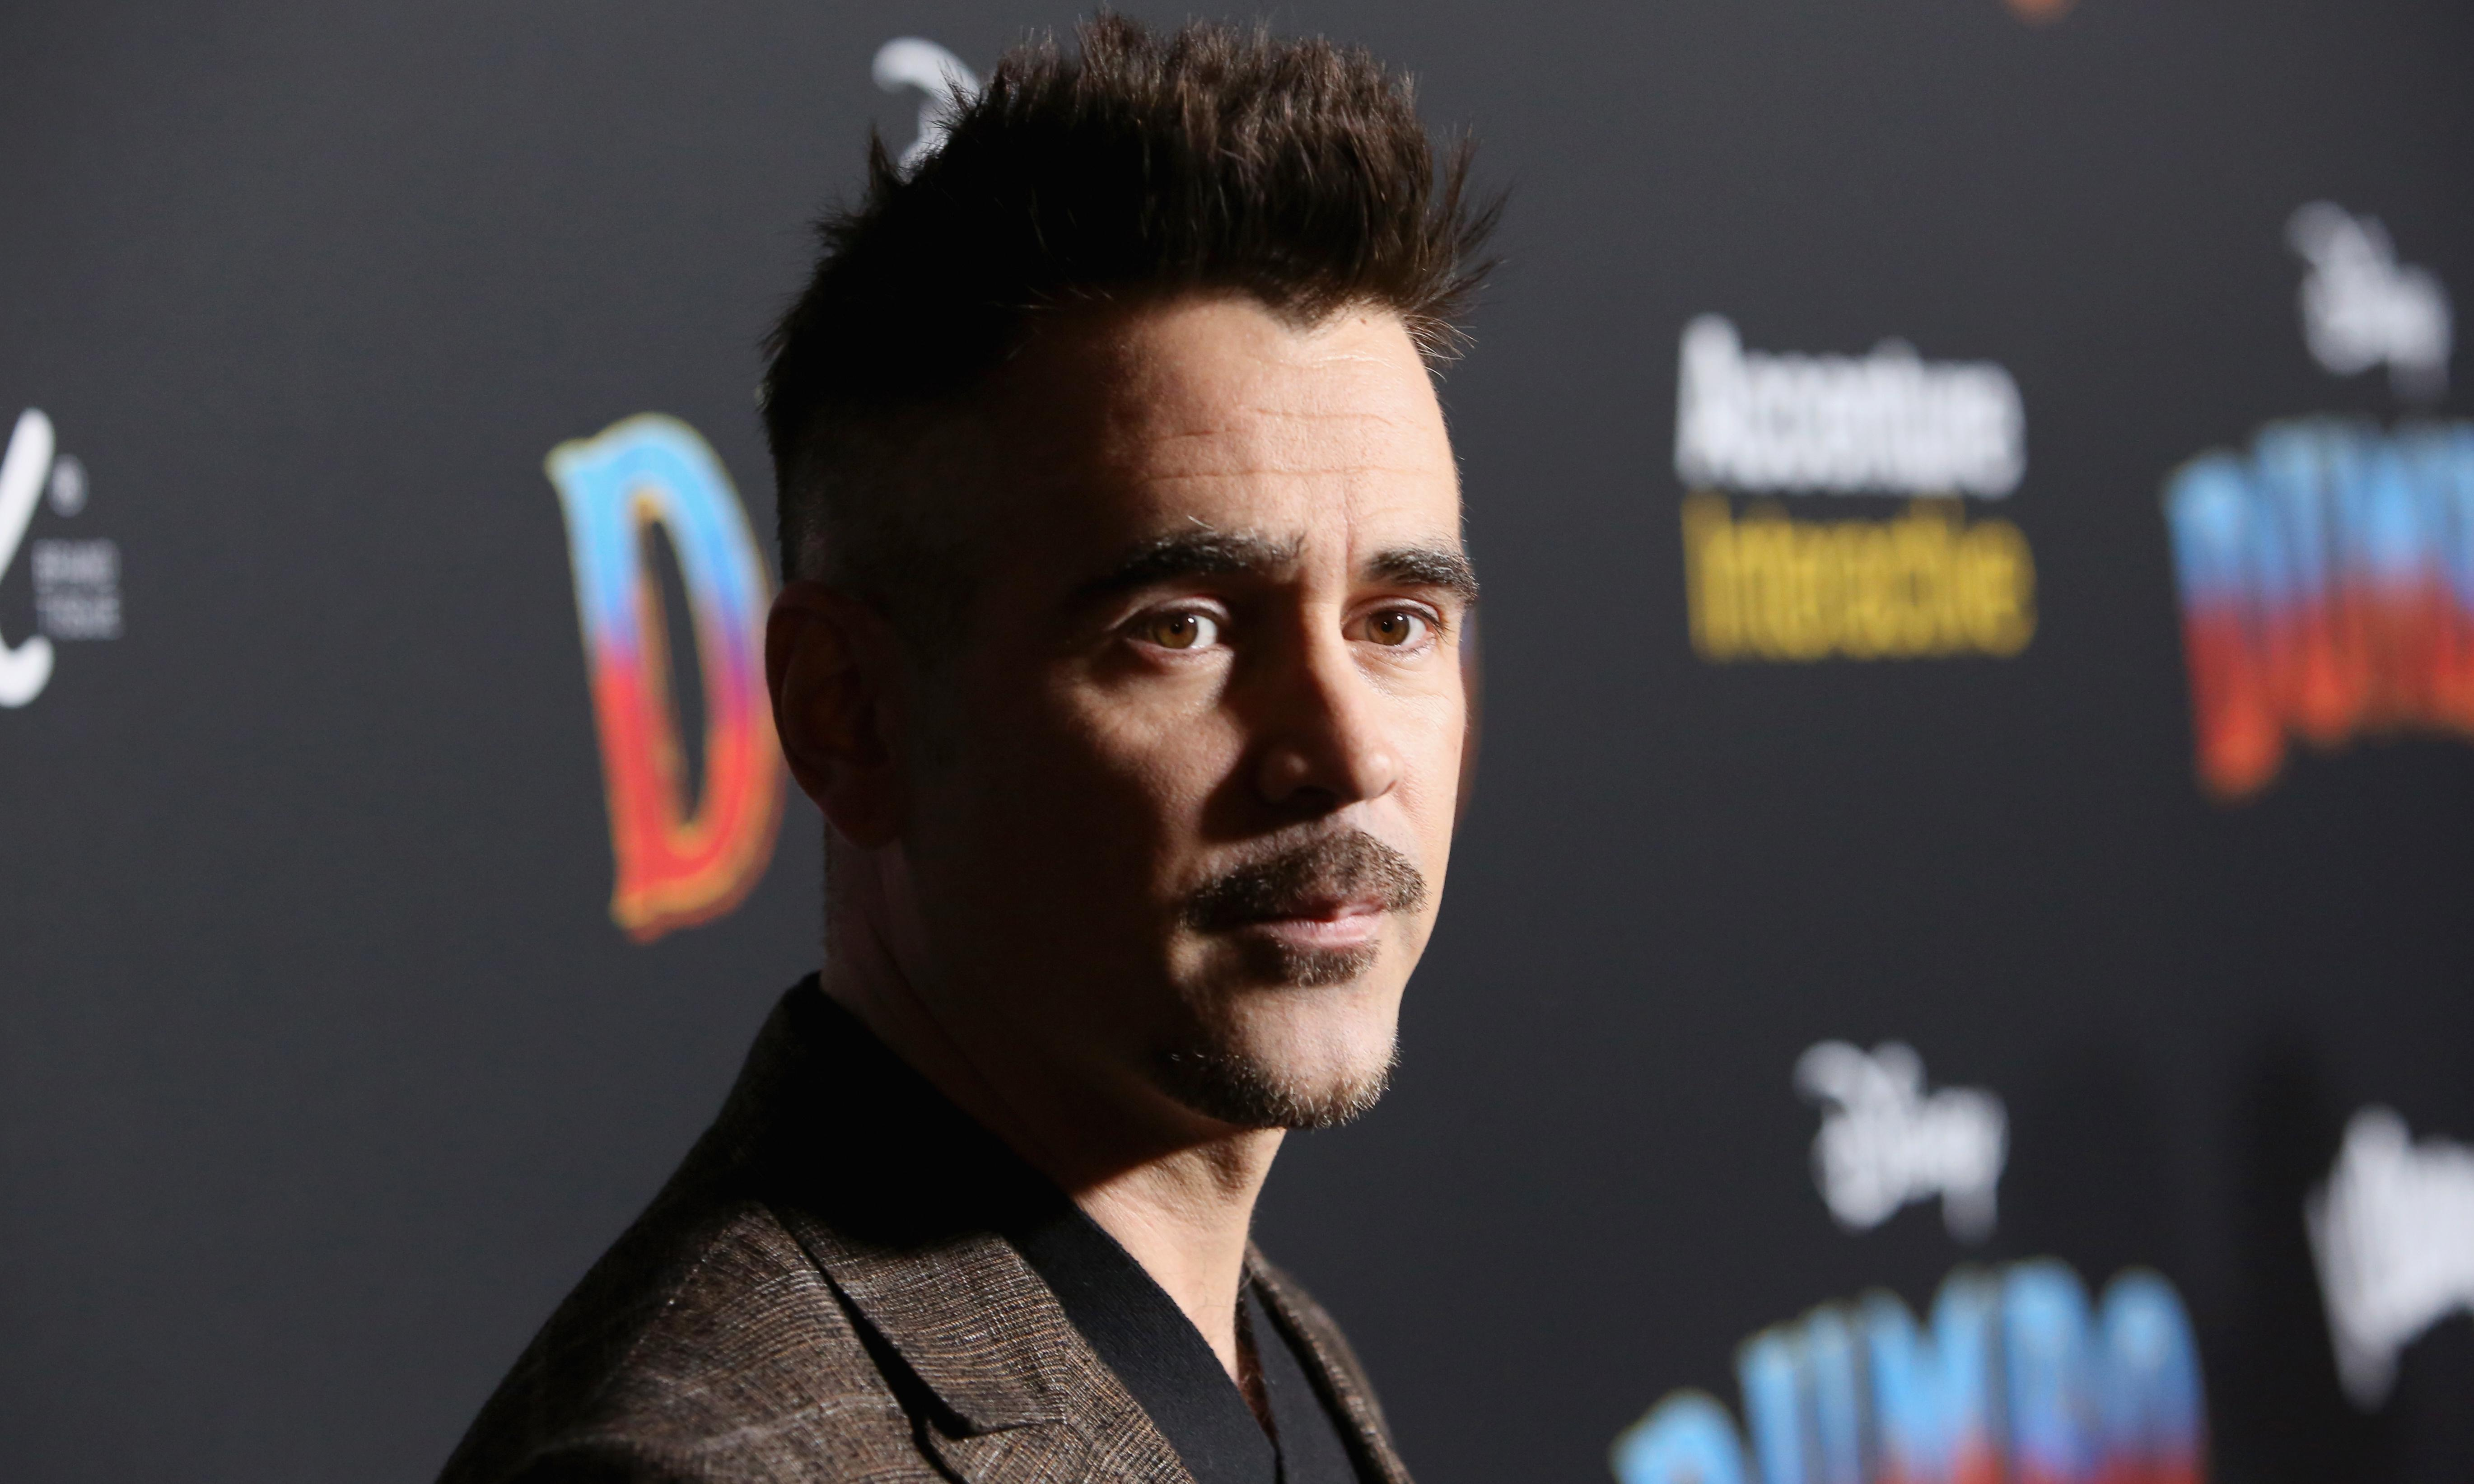 What does Colin Farrell's casting as the Penguin tell us about The Batman?